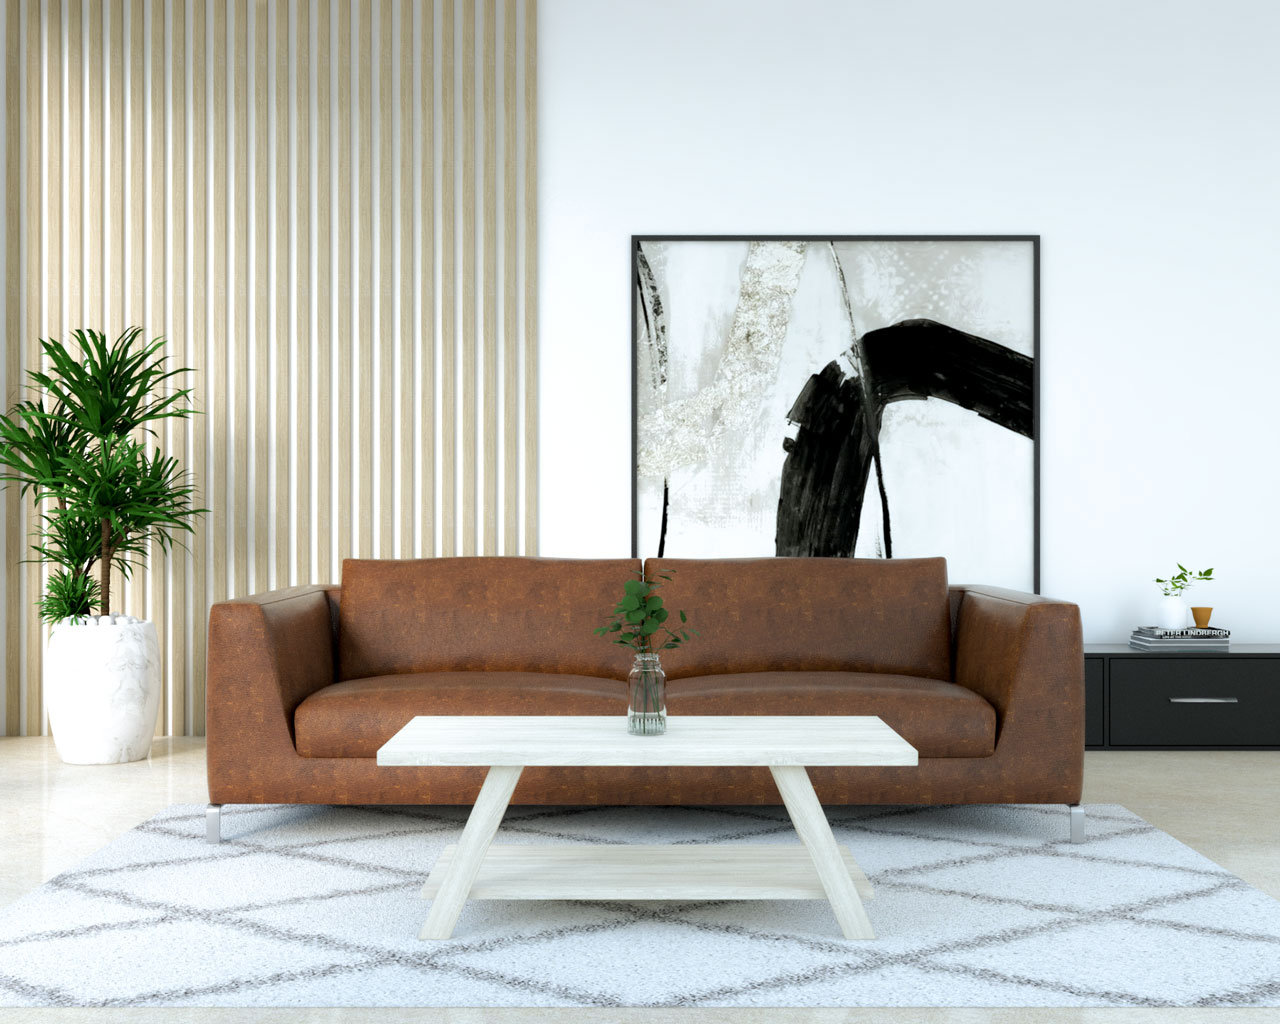 Wooden white table with dark brown leather sofa